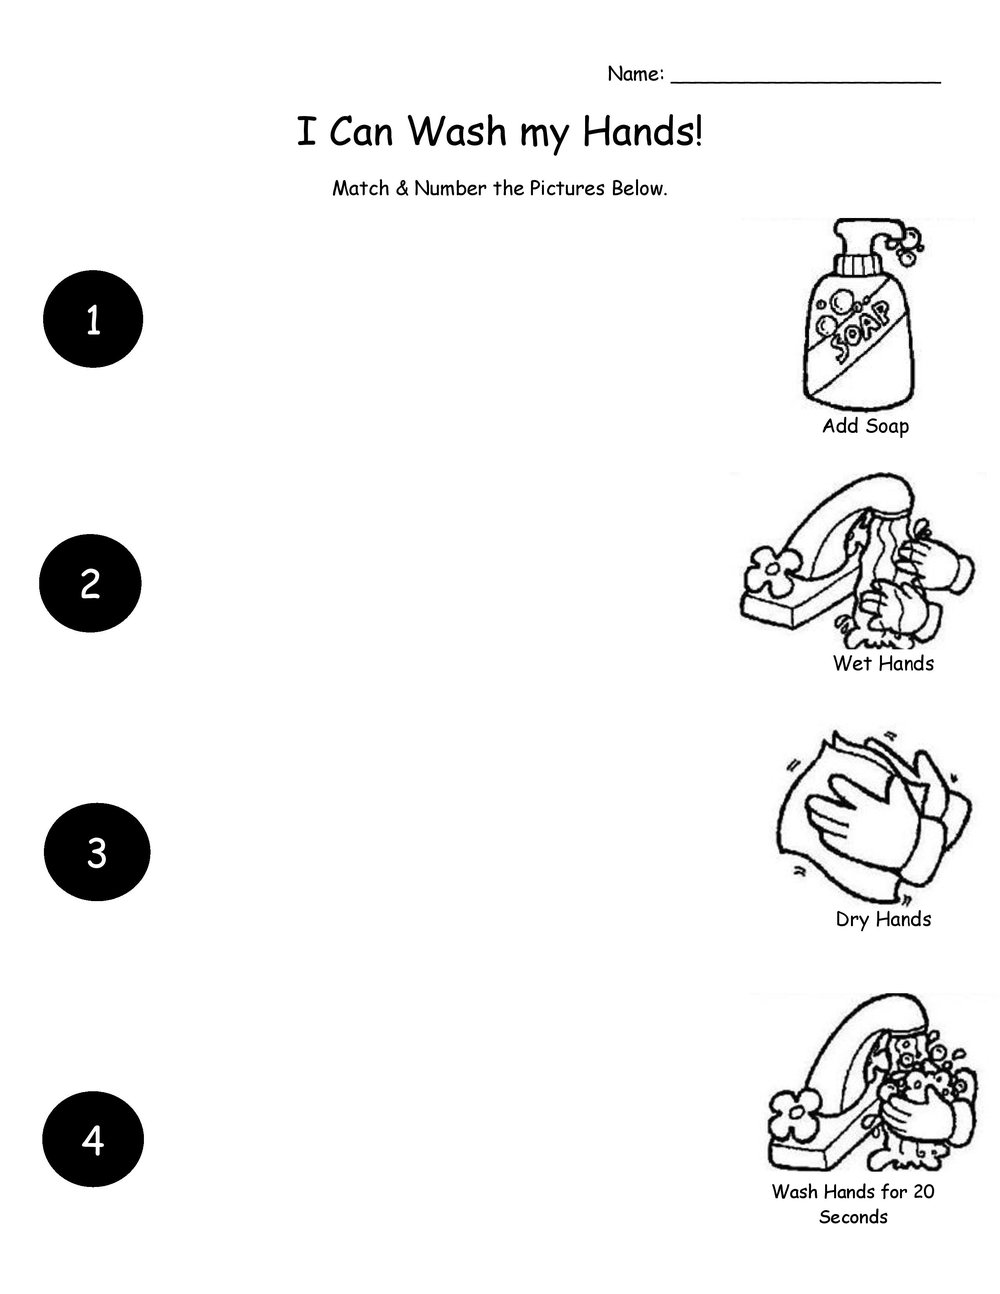 I Can Wash My Hands Matching-page-001.jpg